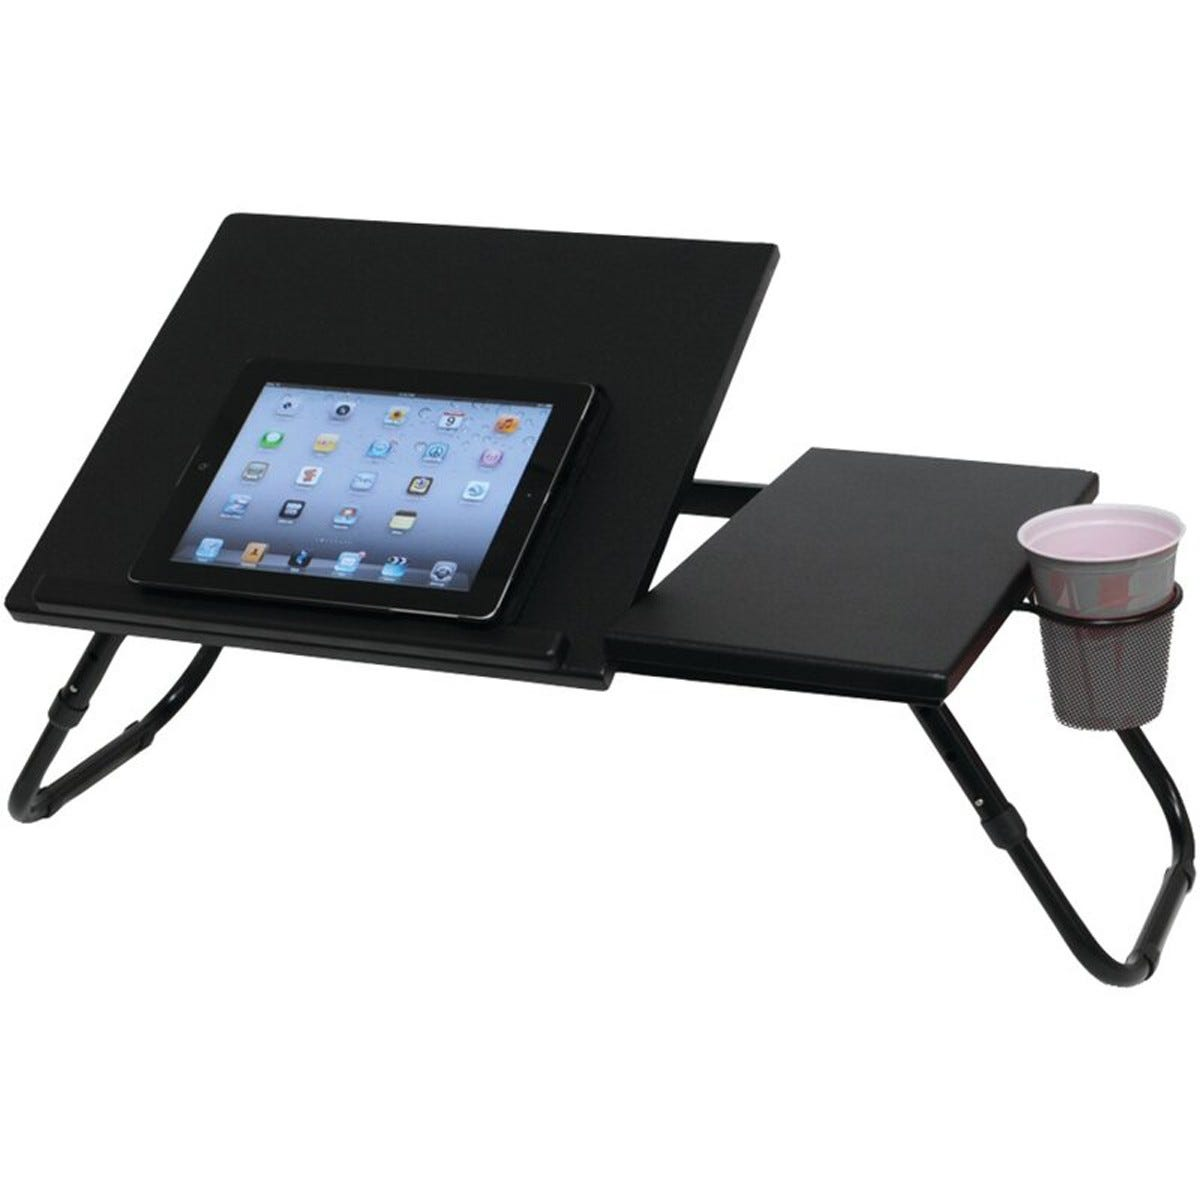 The Symple Stuff Laptop Tray with a tablet on top and a cardboard cup in the cupholder.